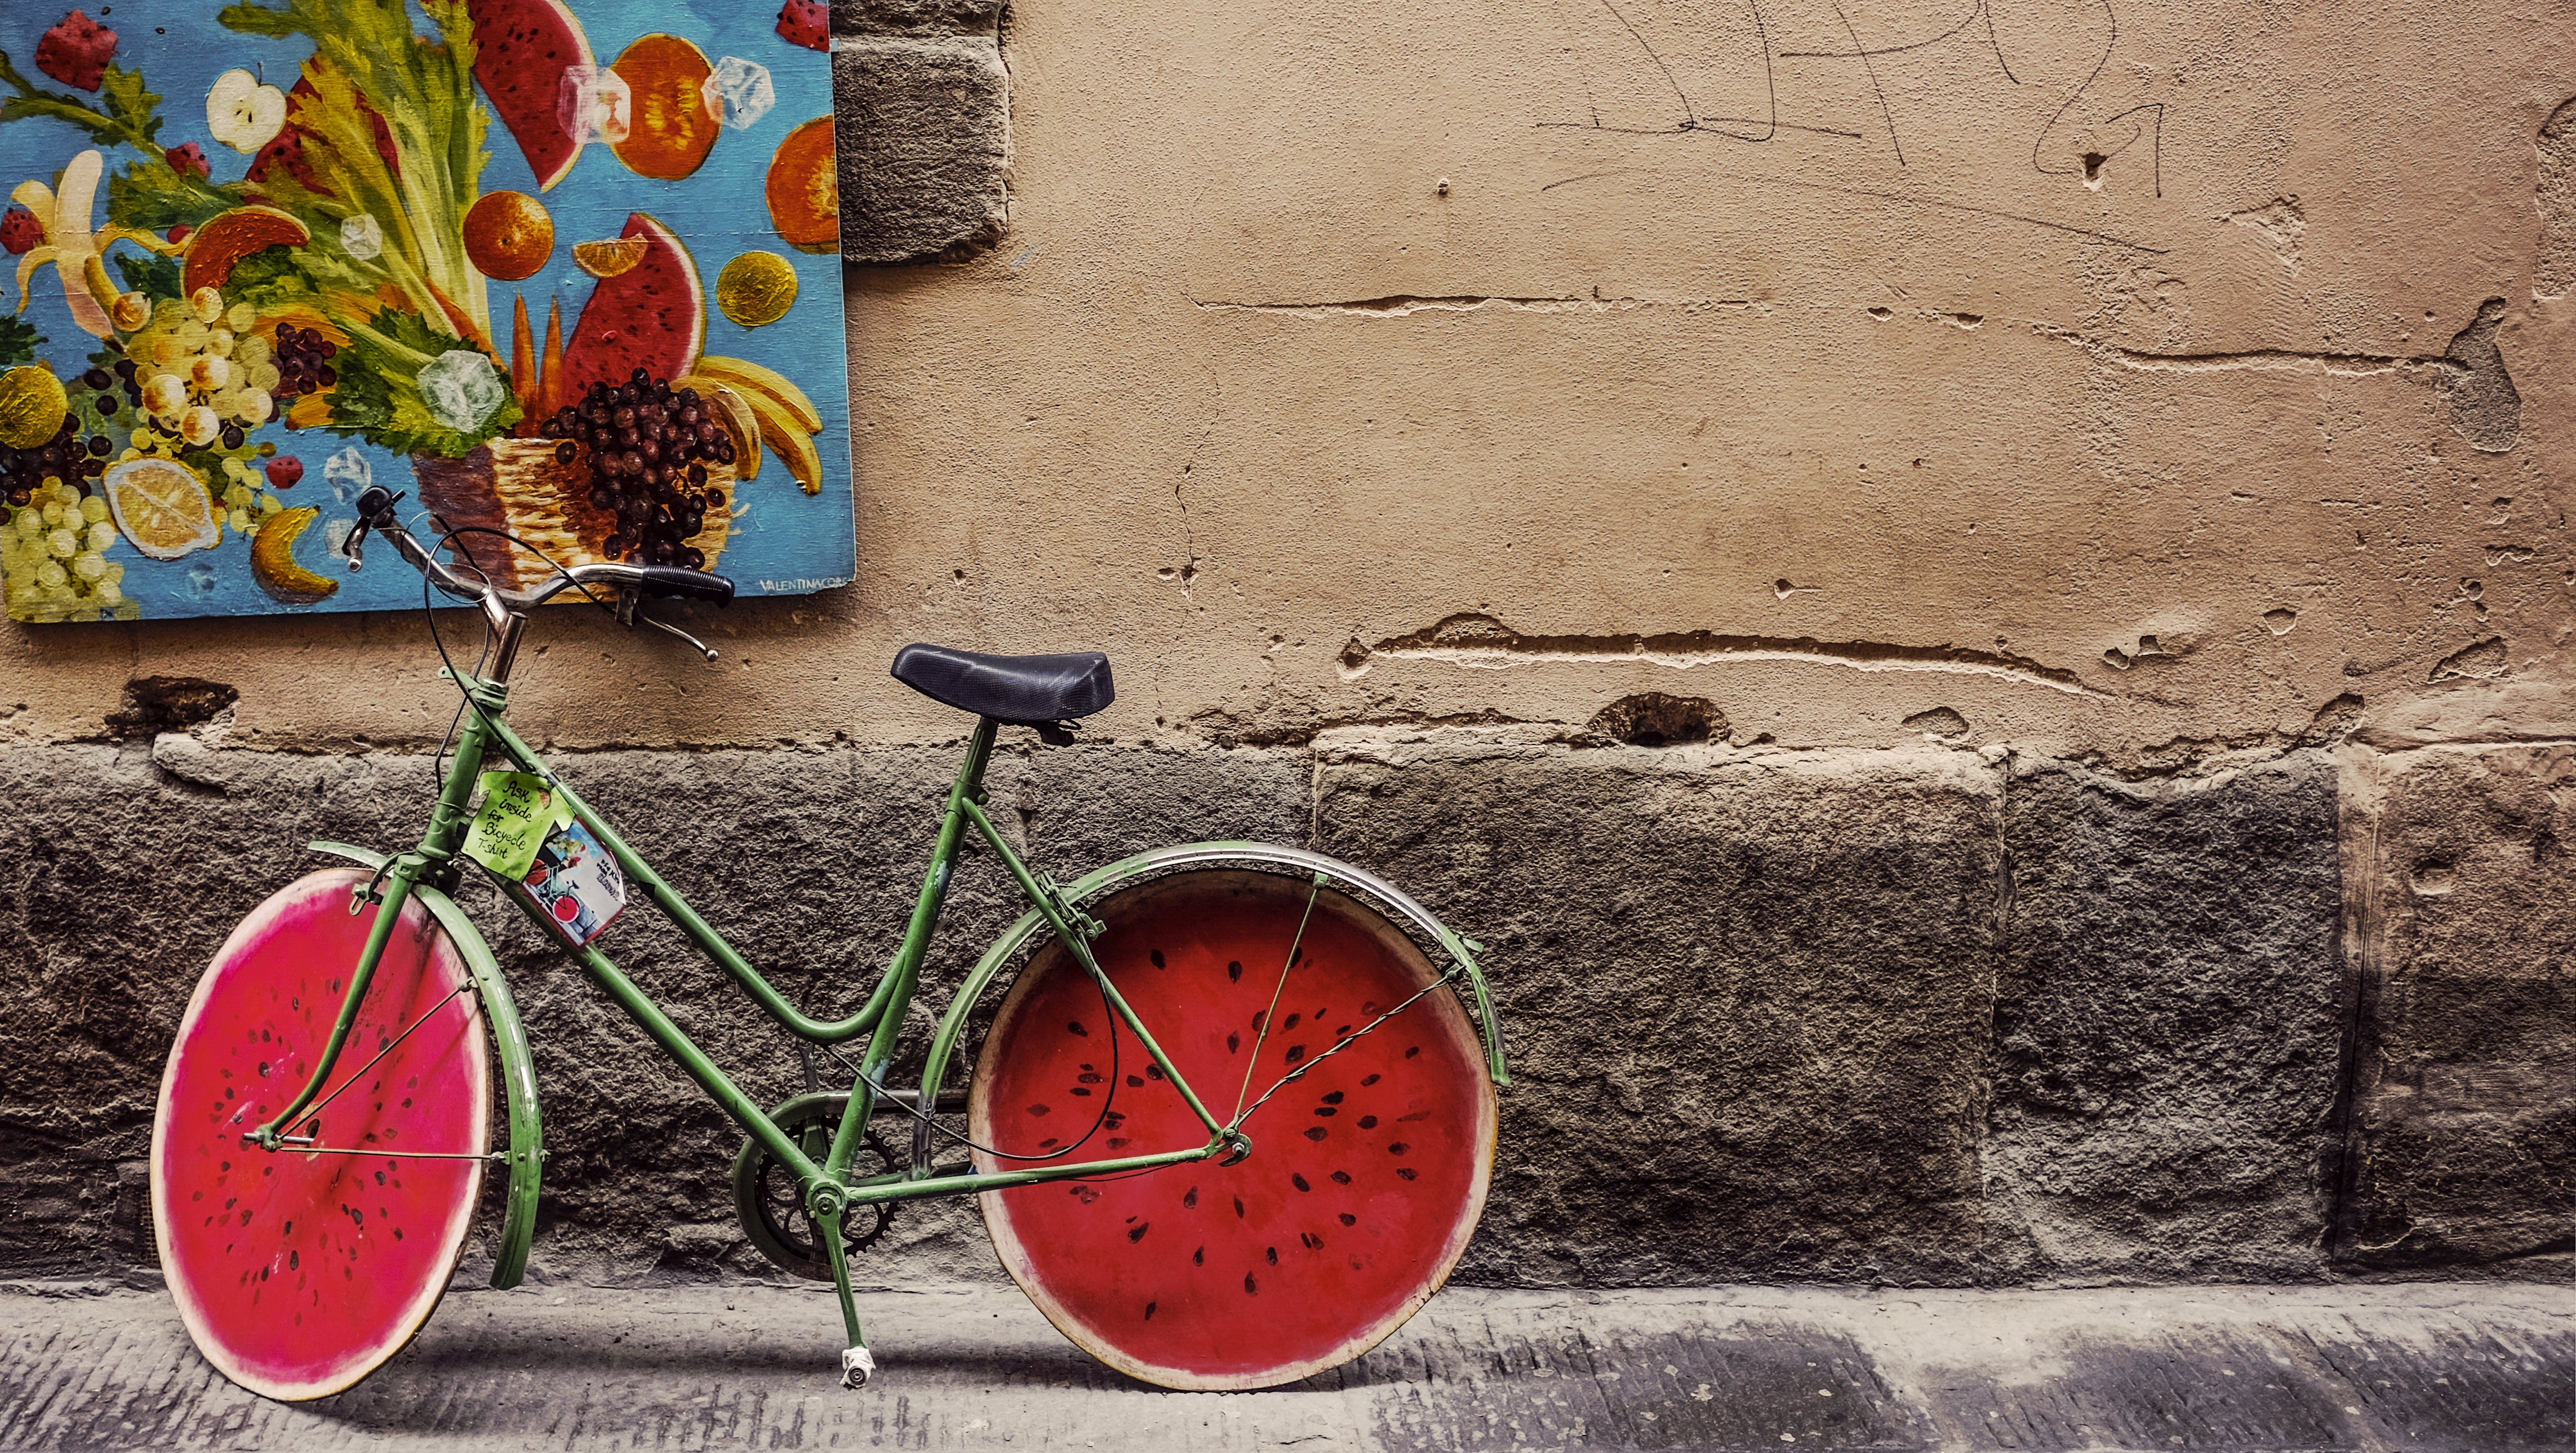 Bicycle Decorated with Watermelon Wheels